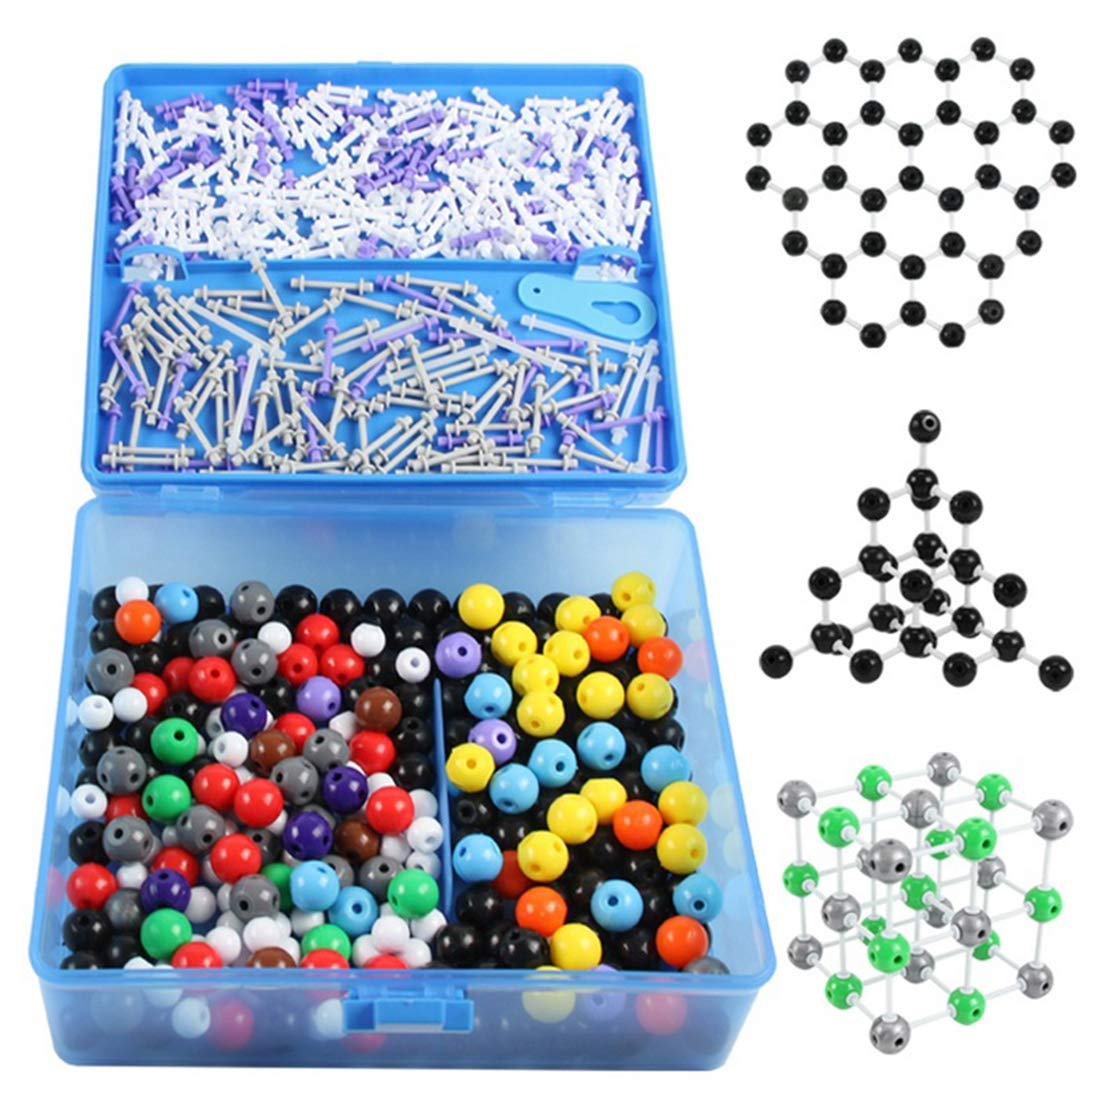 Organic Chemistry Model Kit,634 pcs Organic and Inorganic Modeling Students Teacher Set,Large Set Chemistry Teaching Model Molecular Model Kit for Teacher Students